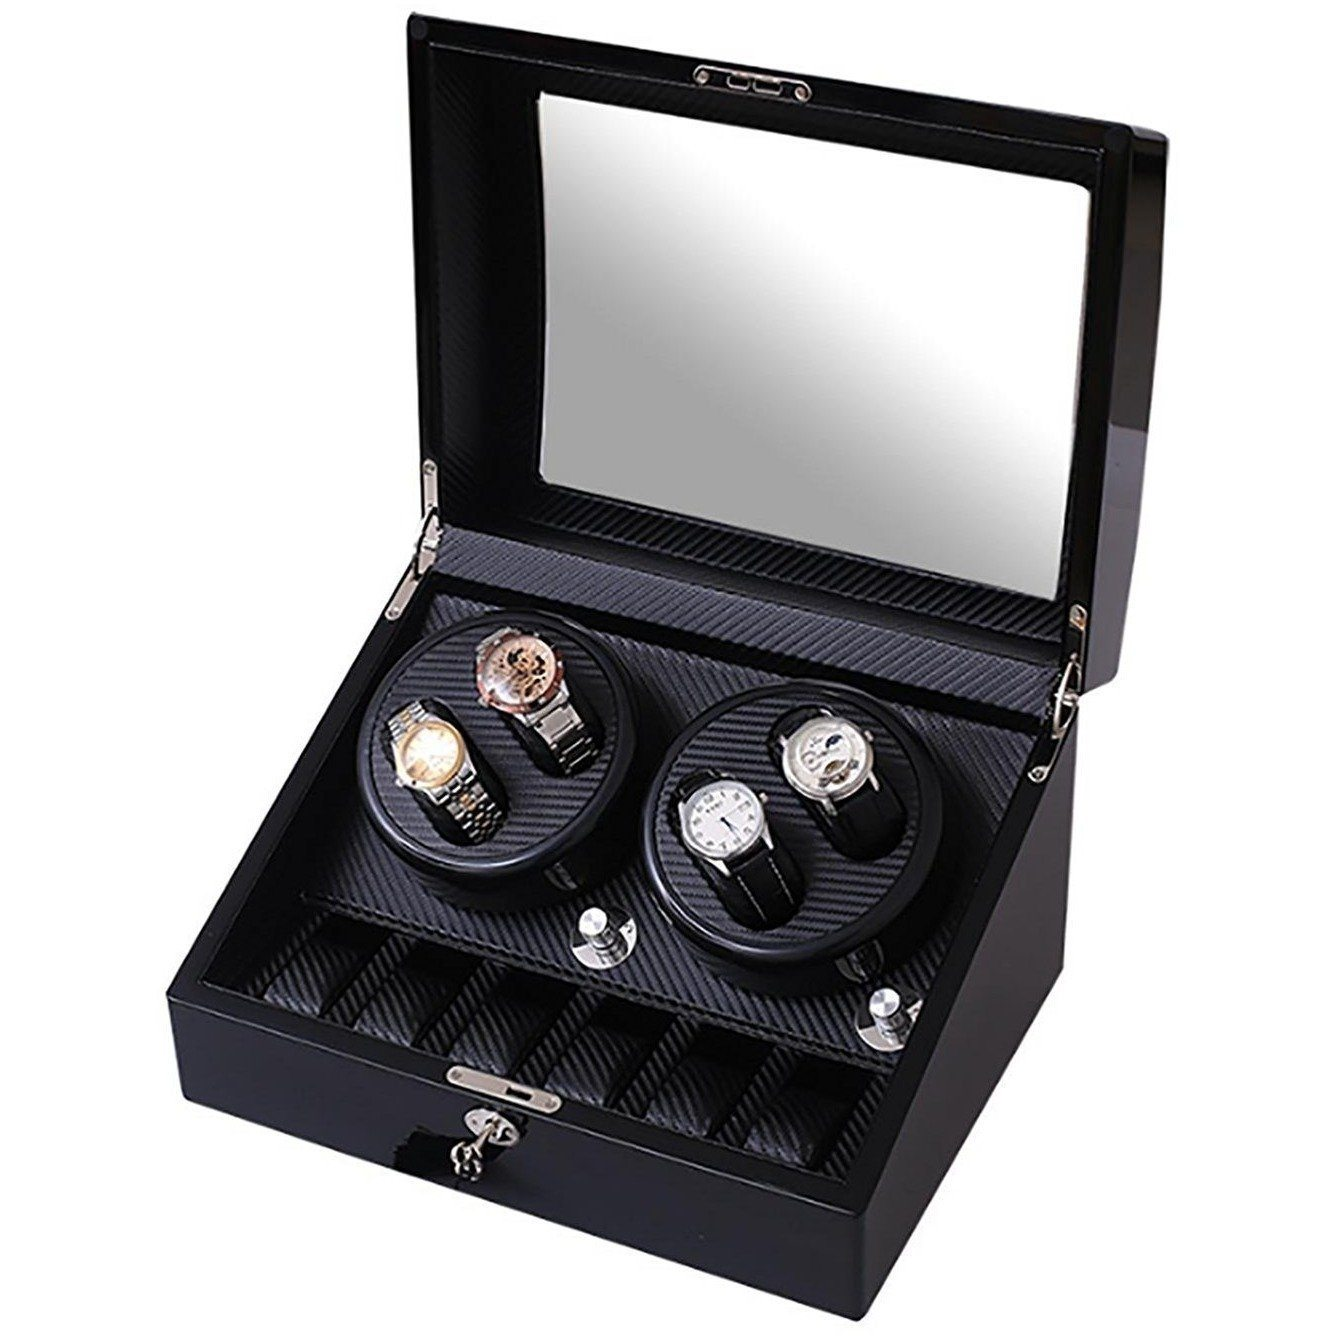 Watch Winder Box for 4 + 6 Watches in Black, Watch Winder Boxes, Cuffed.com.au, CB9040, $0.00